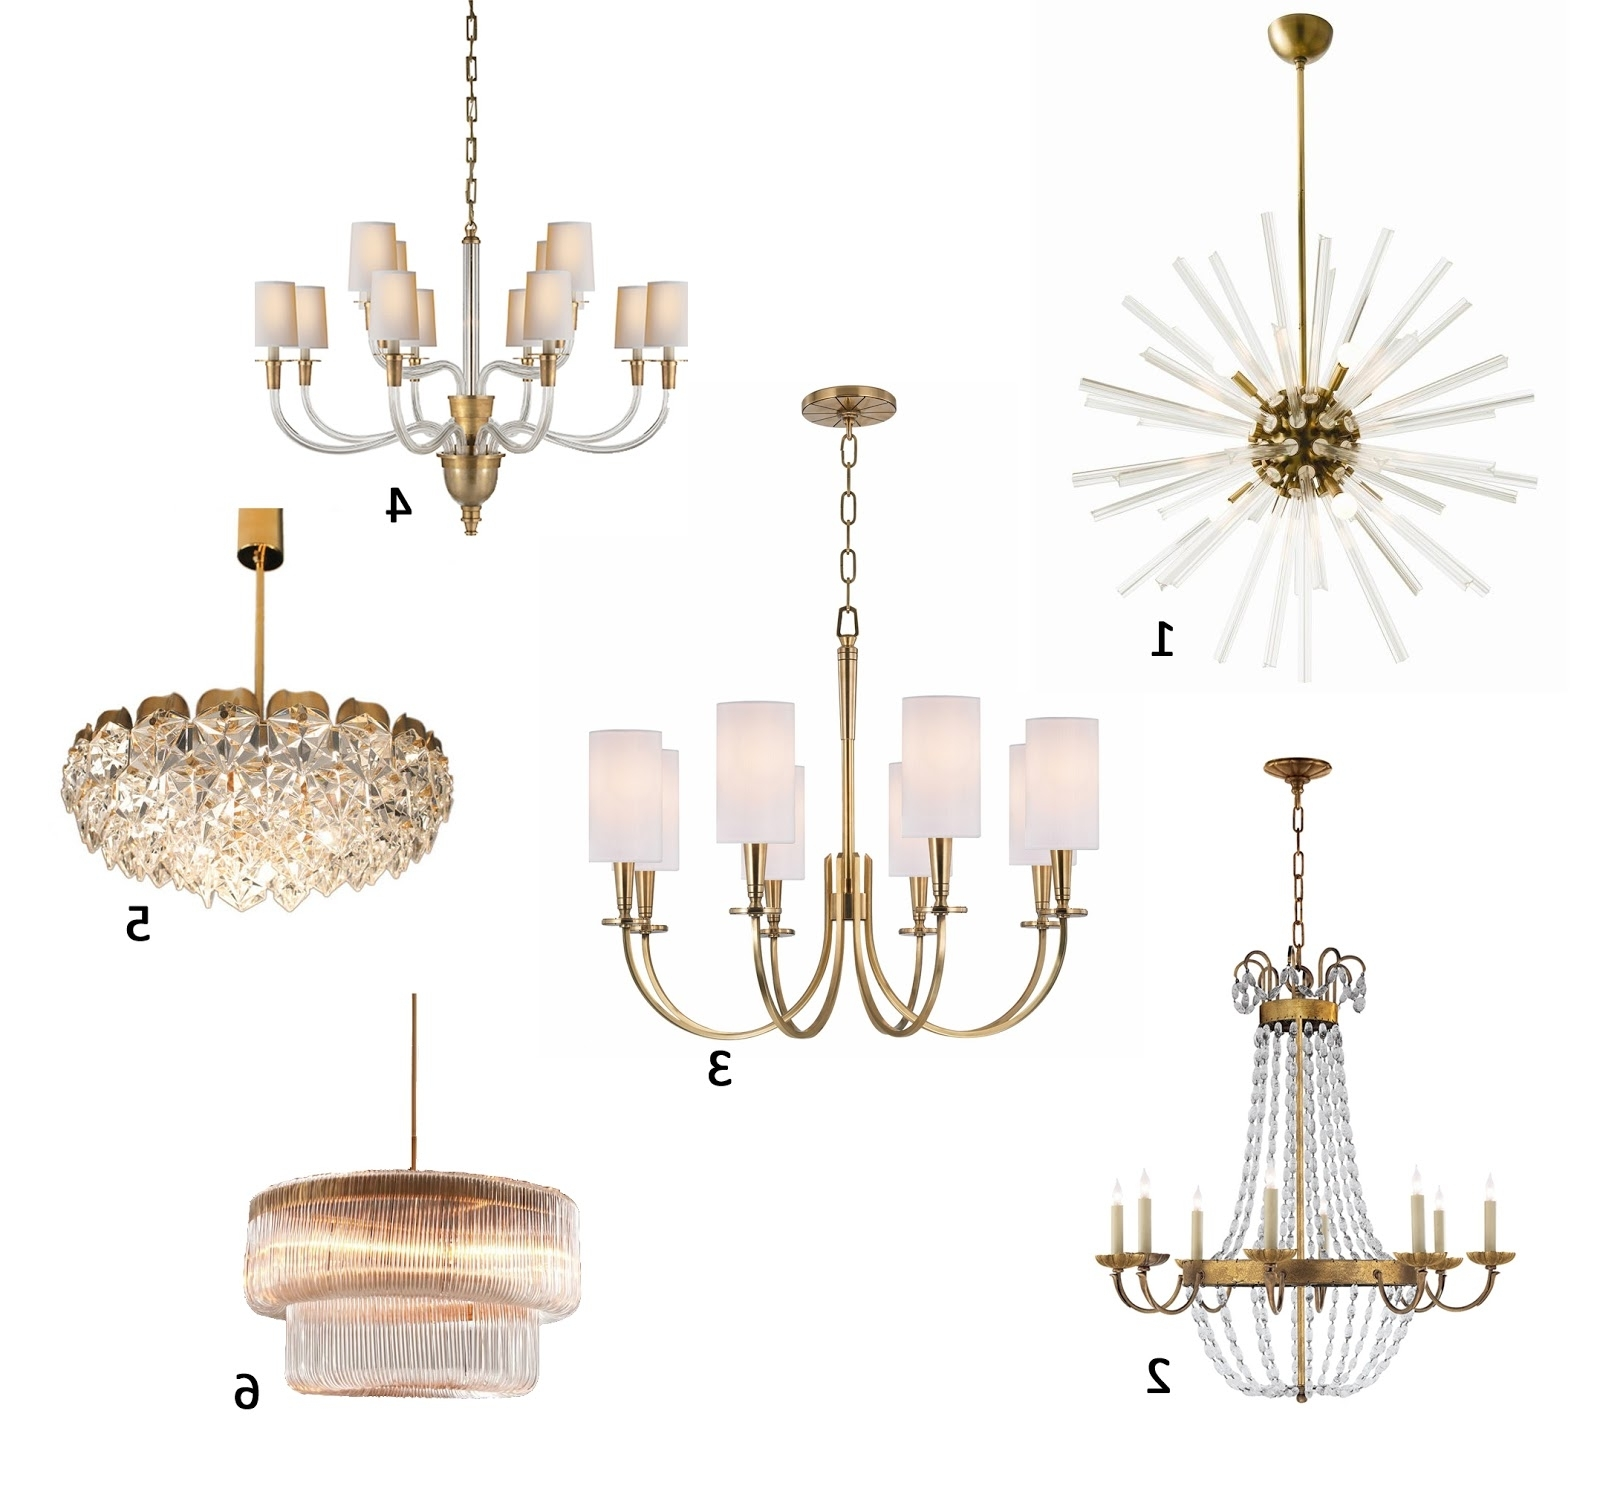 Am Dolce Vita: A Roundup Of My Favourite Brass Chandeliers Within Most Recent Traditional Brass Chandeliers (View 2 of 20)